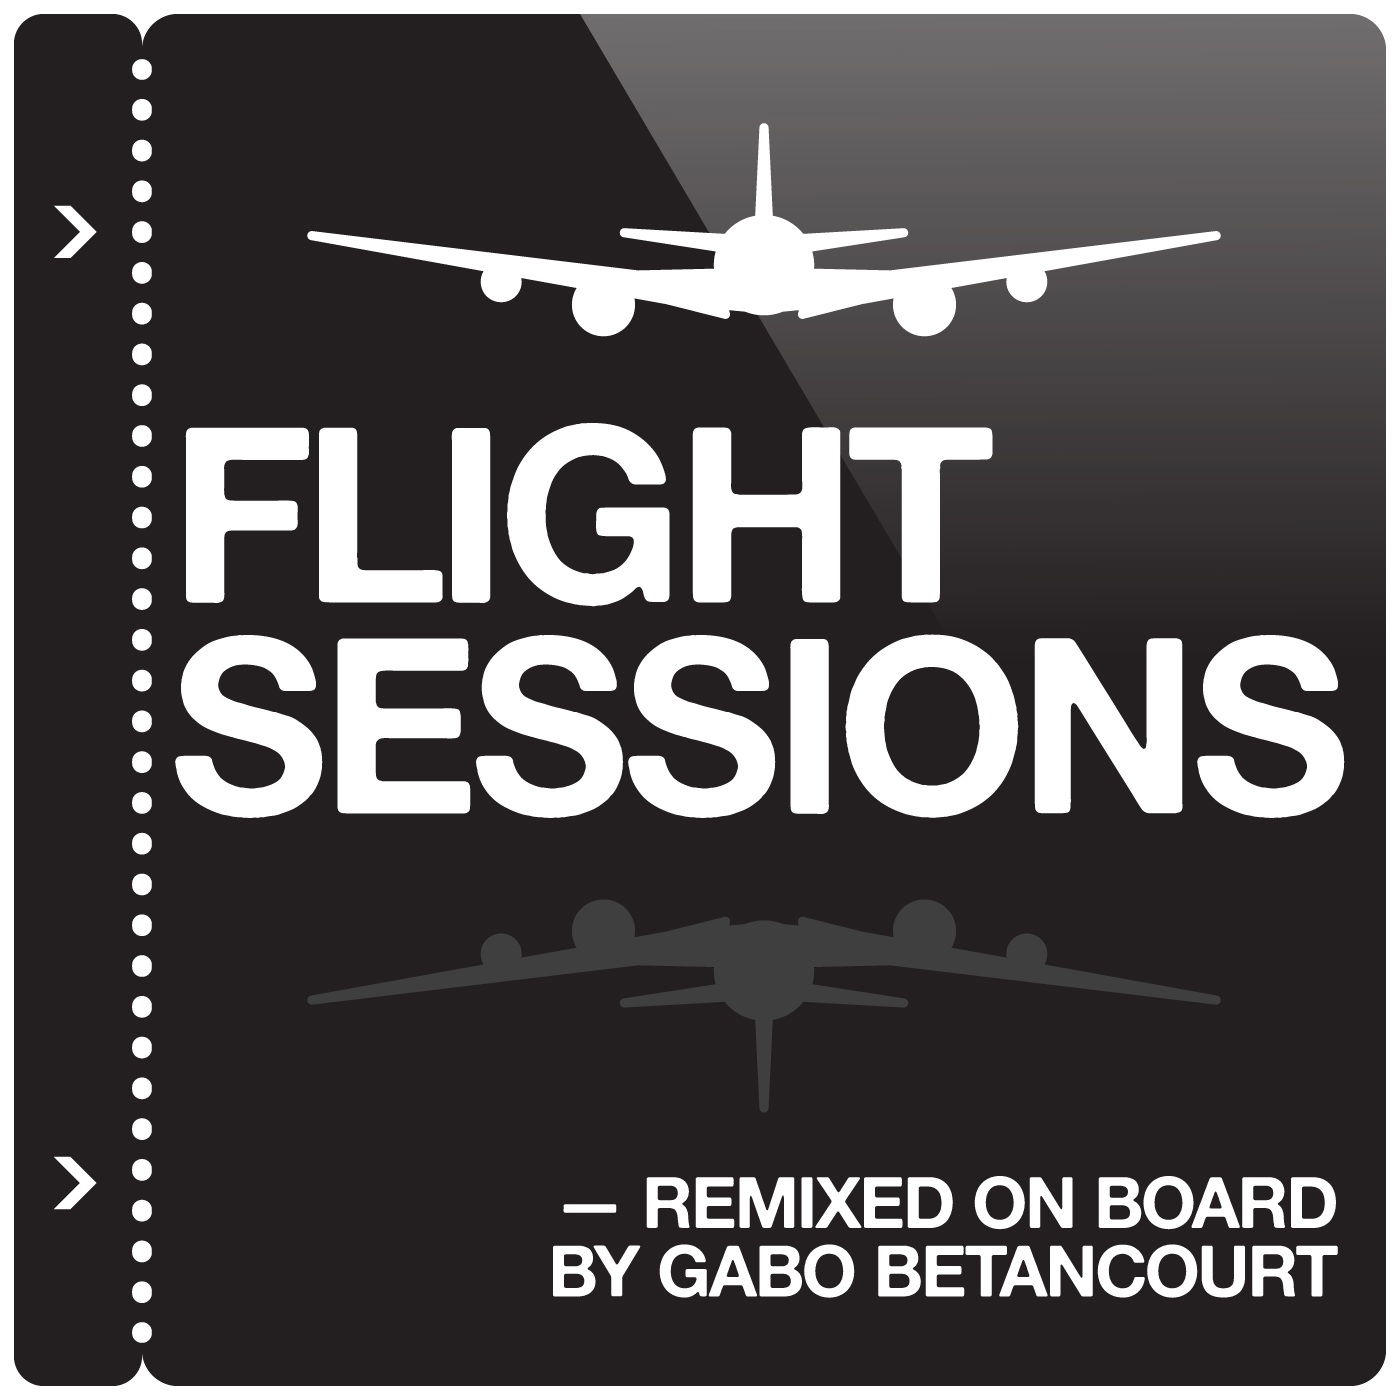 FLIGHT SESSIONS